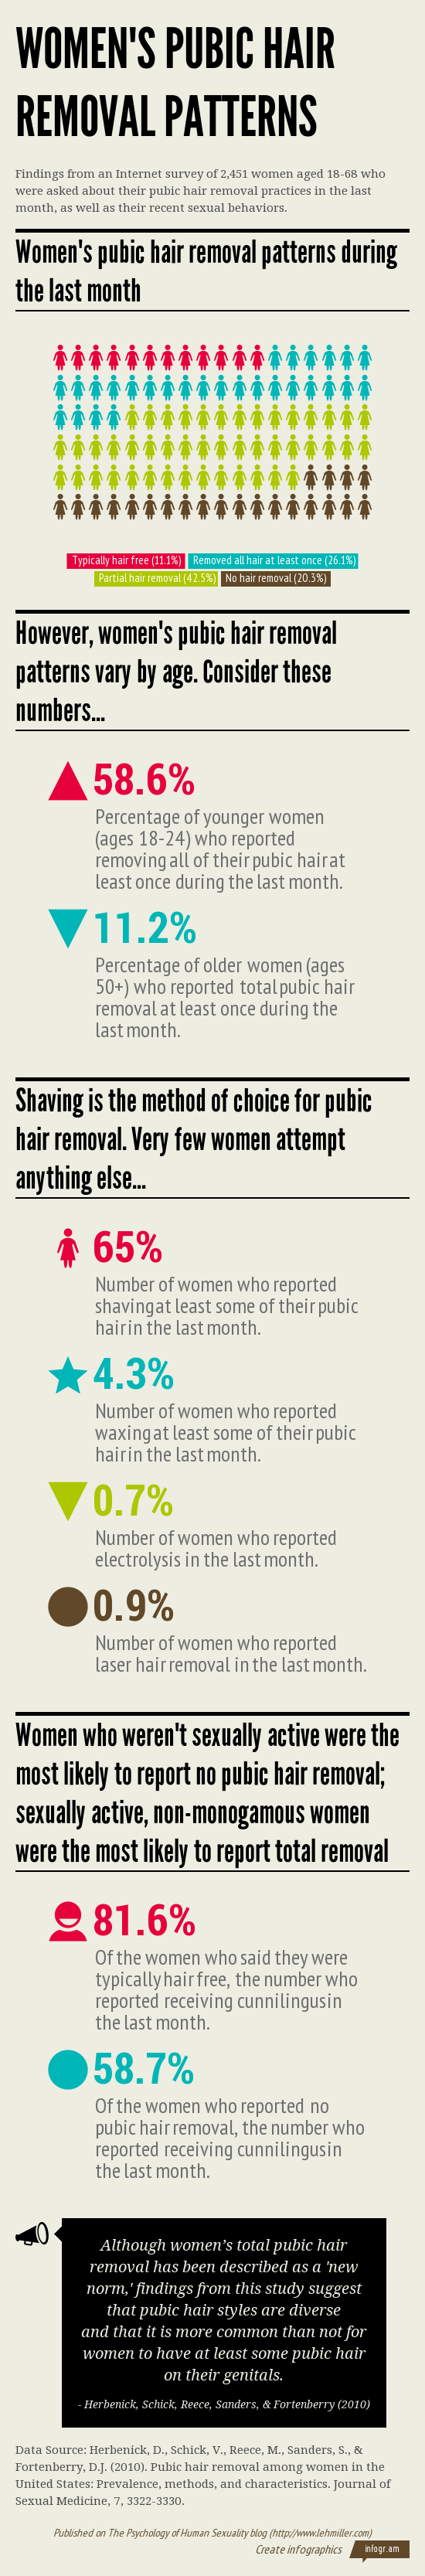 Women\'s Pubic Hair Removal Patterns (Infographic) | Pubic hair ...